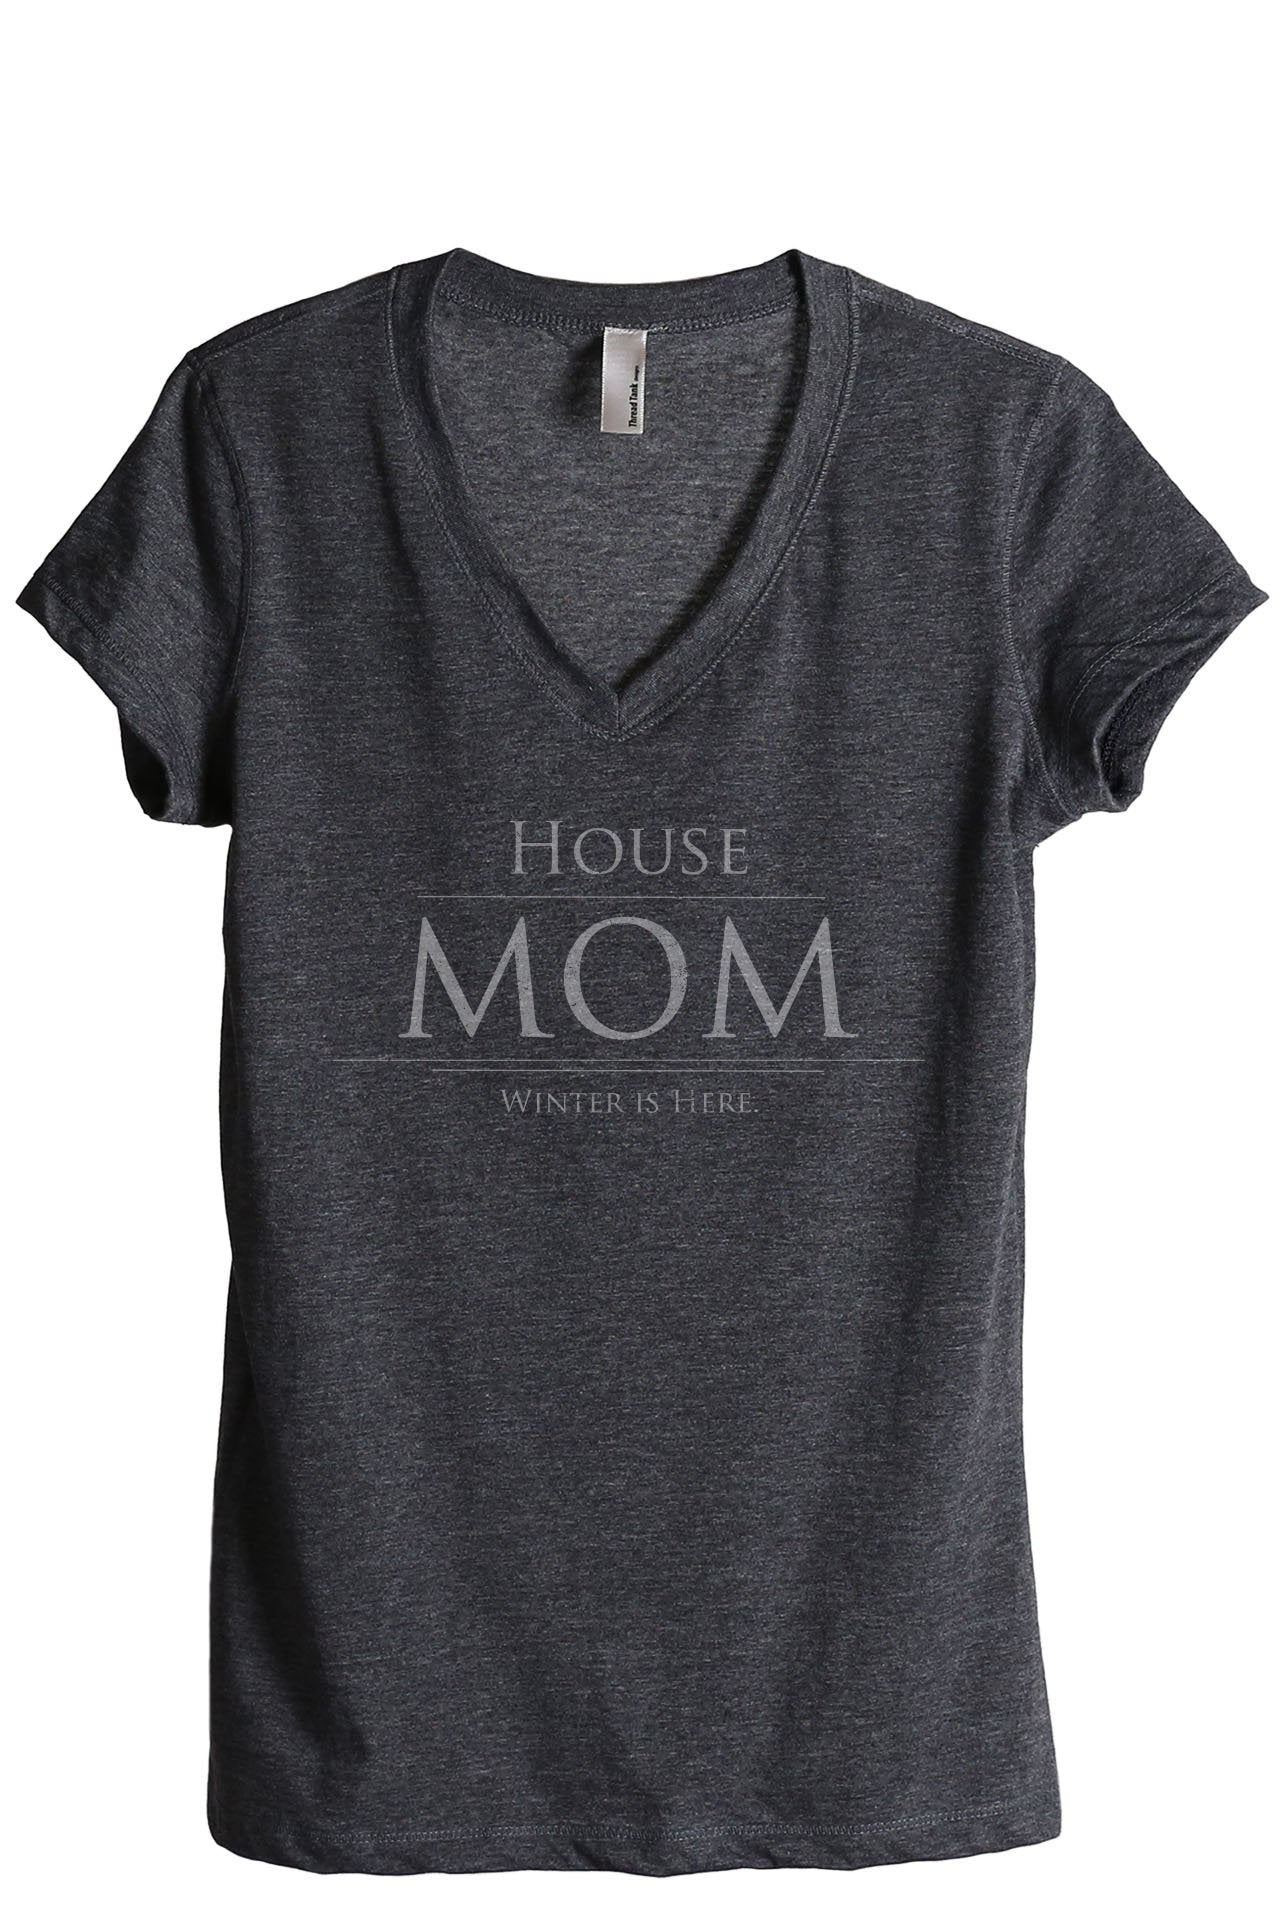 House Mom Winter Is Here Women's Relaxed V-Neck T-Shirt Tee Charcoal